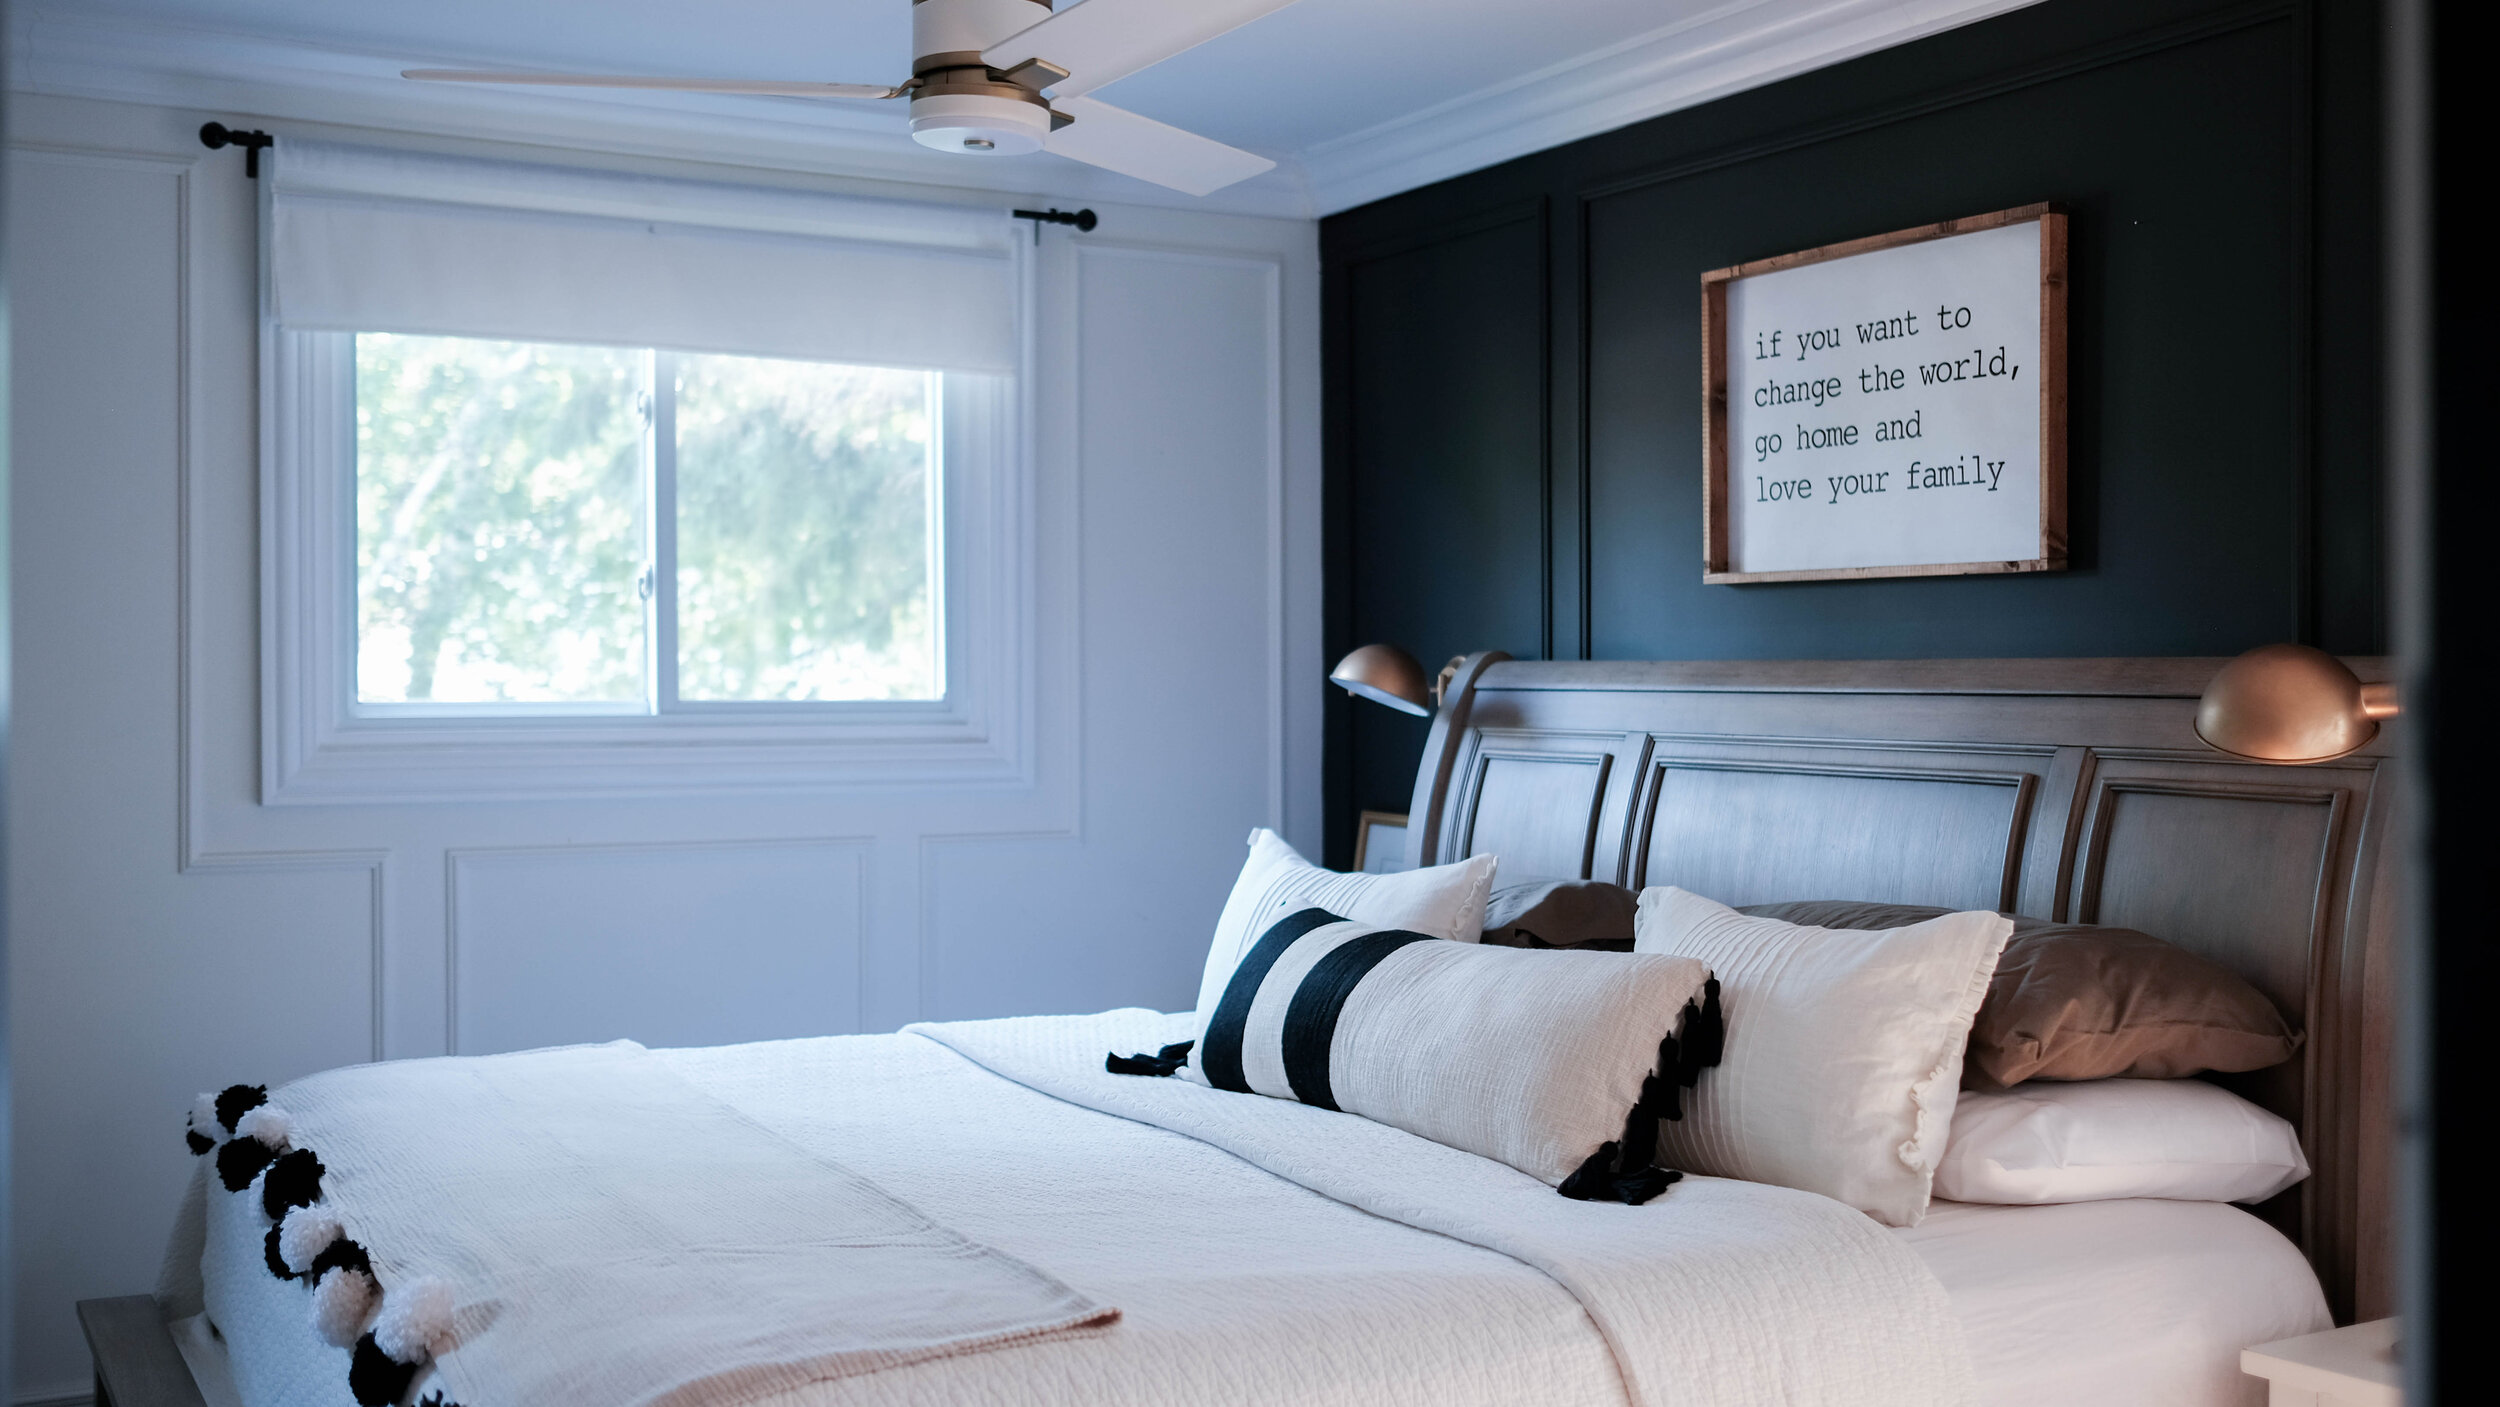 Why I Love Having A Ceiling Fan In My Bedroom The Learner Observer